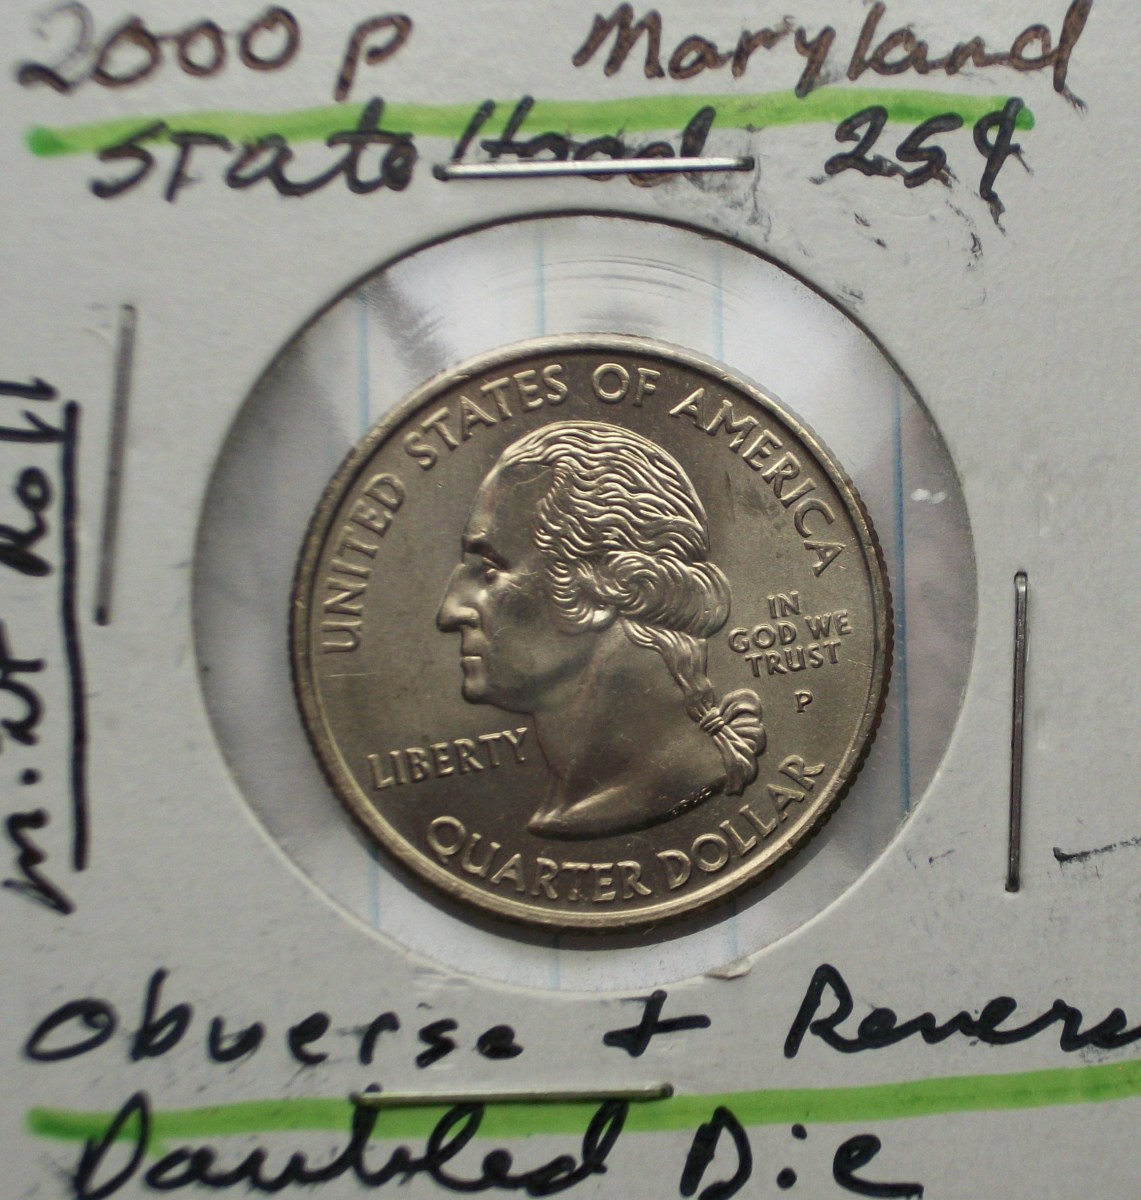 2000P Maryland Statehood Quarter Doubled Die Reverse